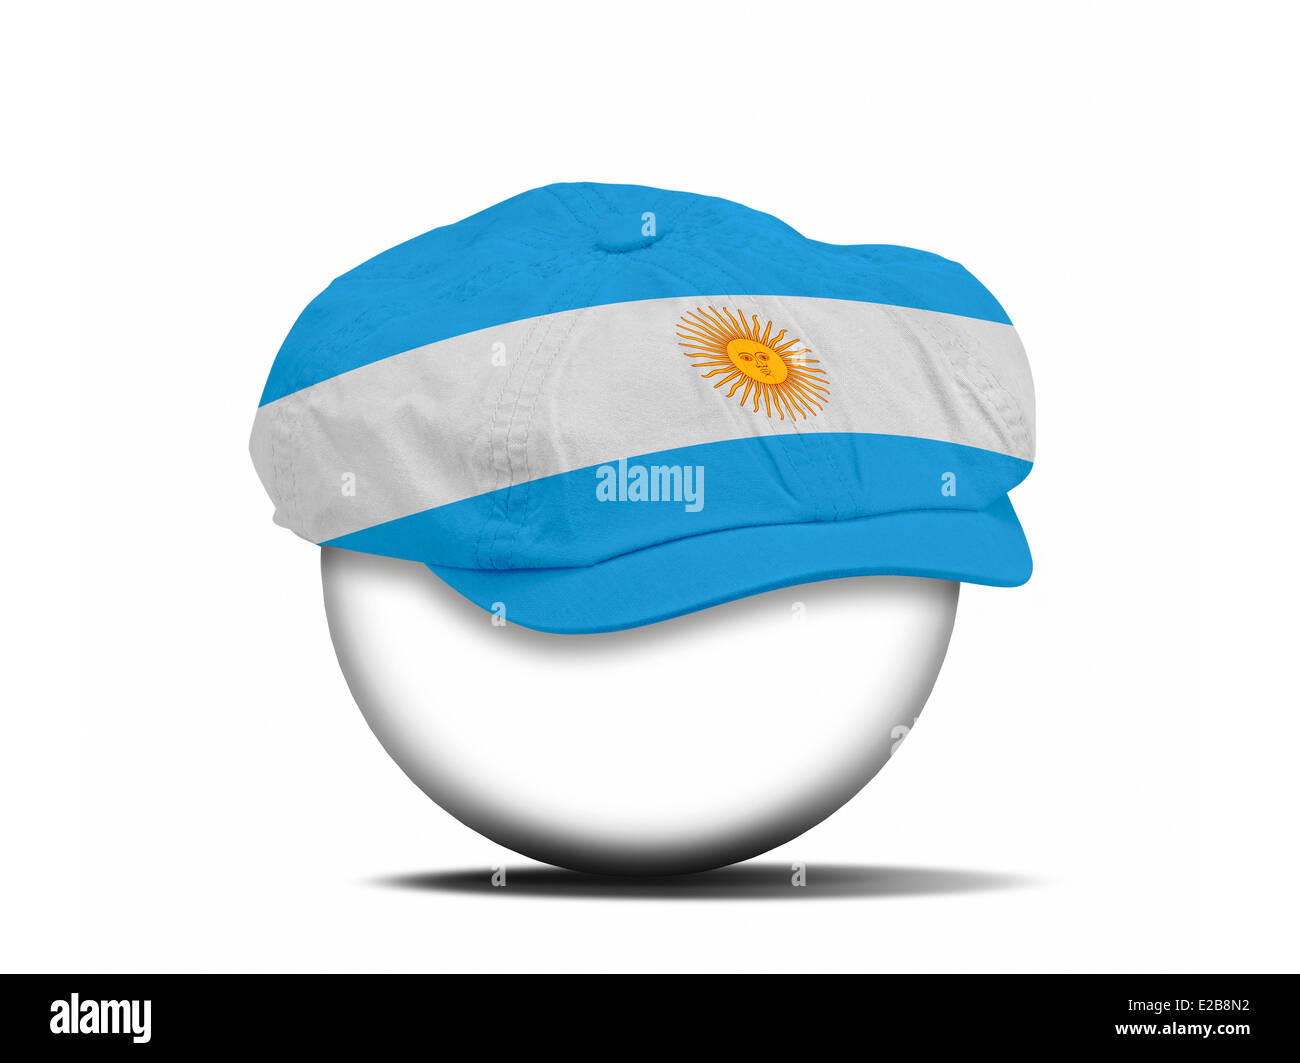 fashion hat on white with the flag of Argentina - clipping path for the hat - Stock Image